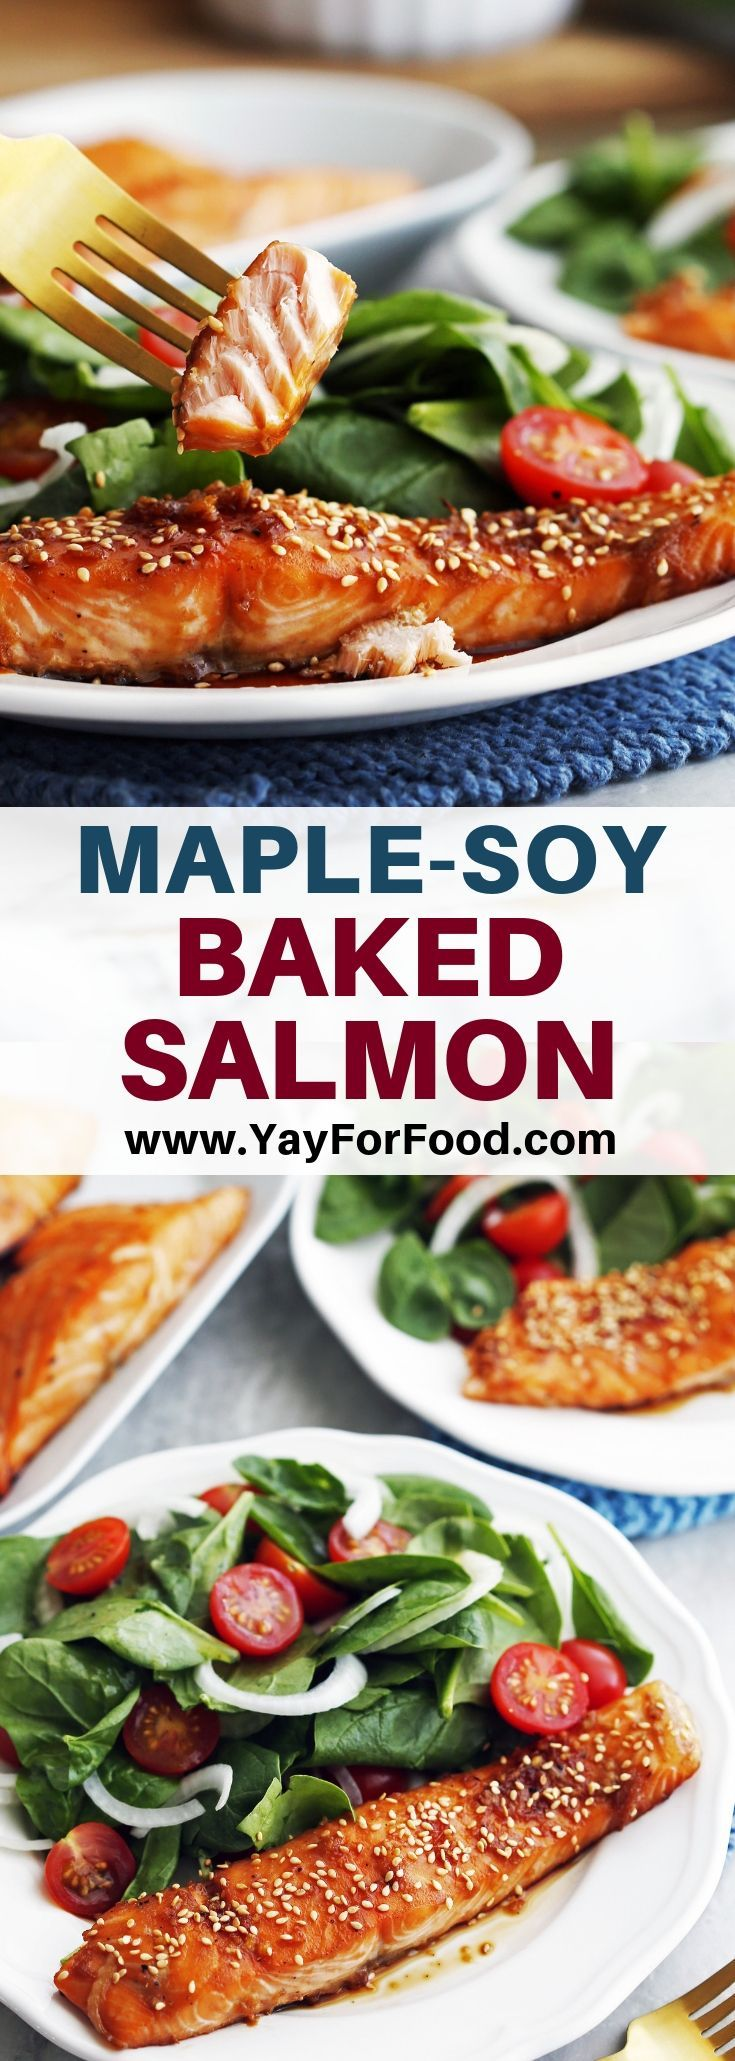 Maple-Soy Baked Salmon Recipe - Yay! For Food